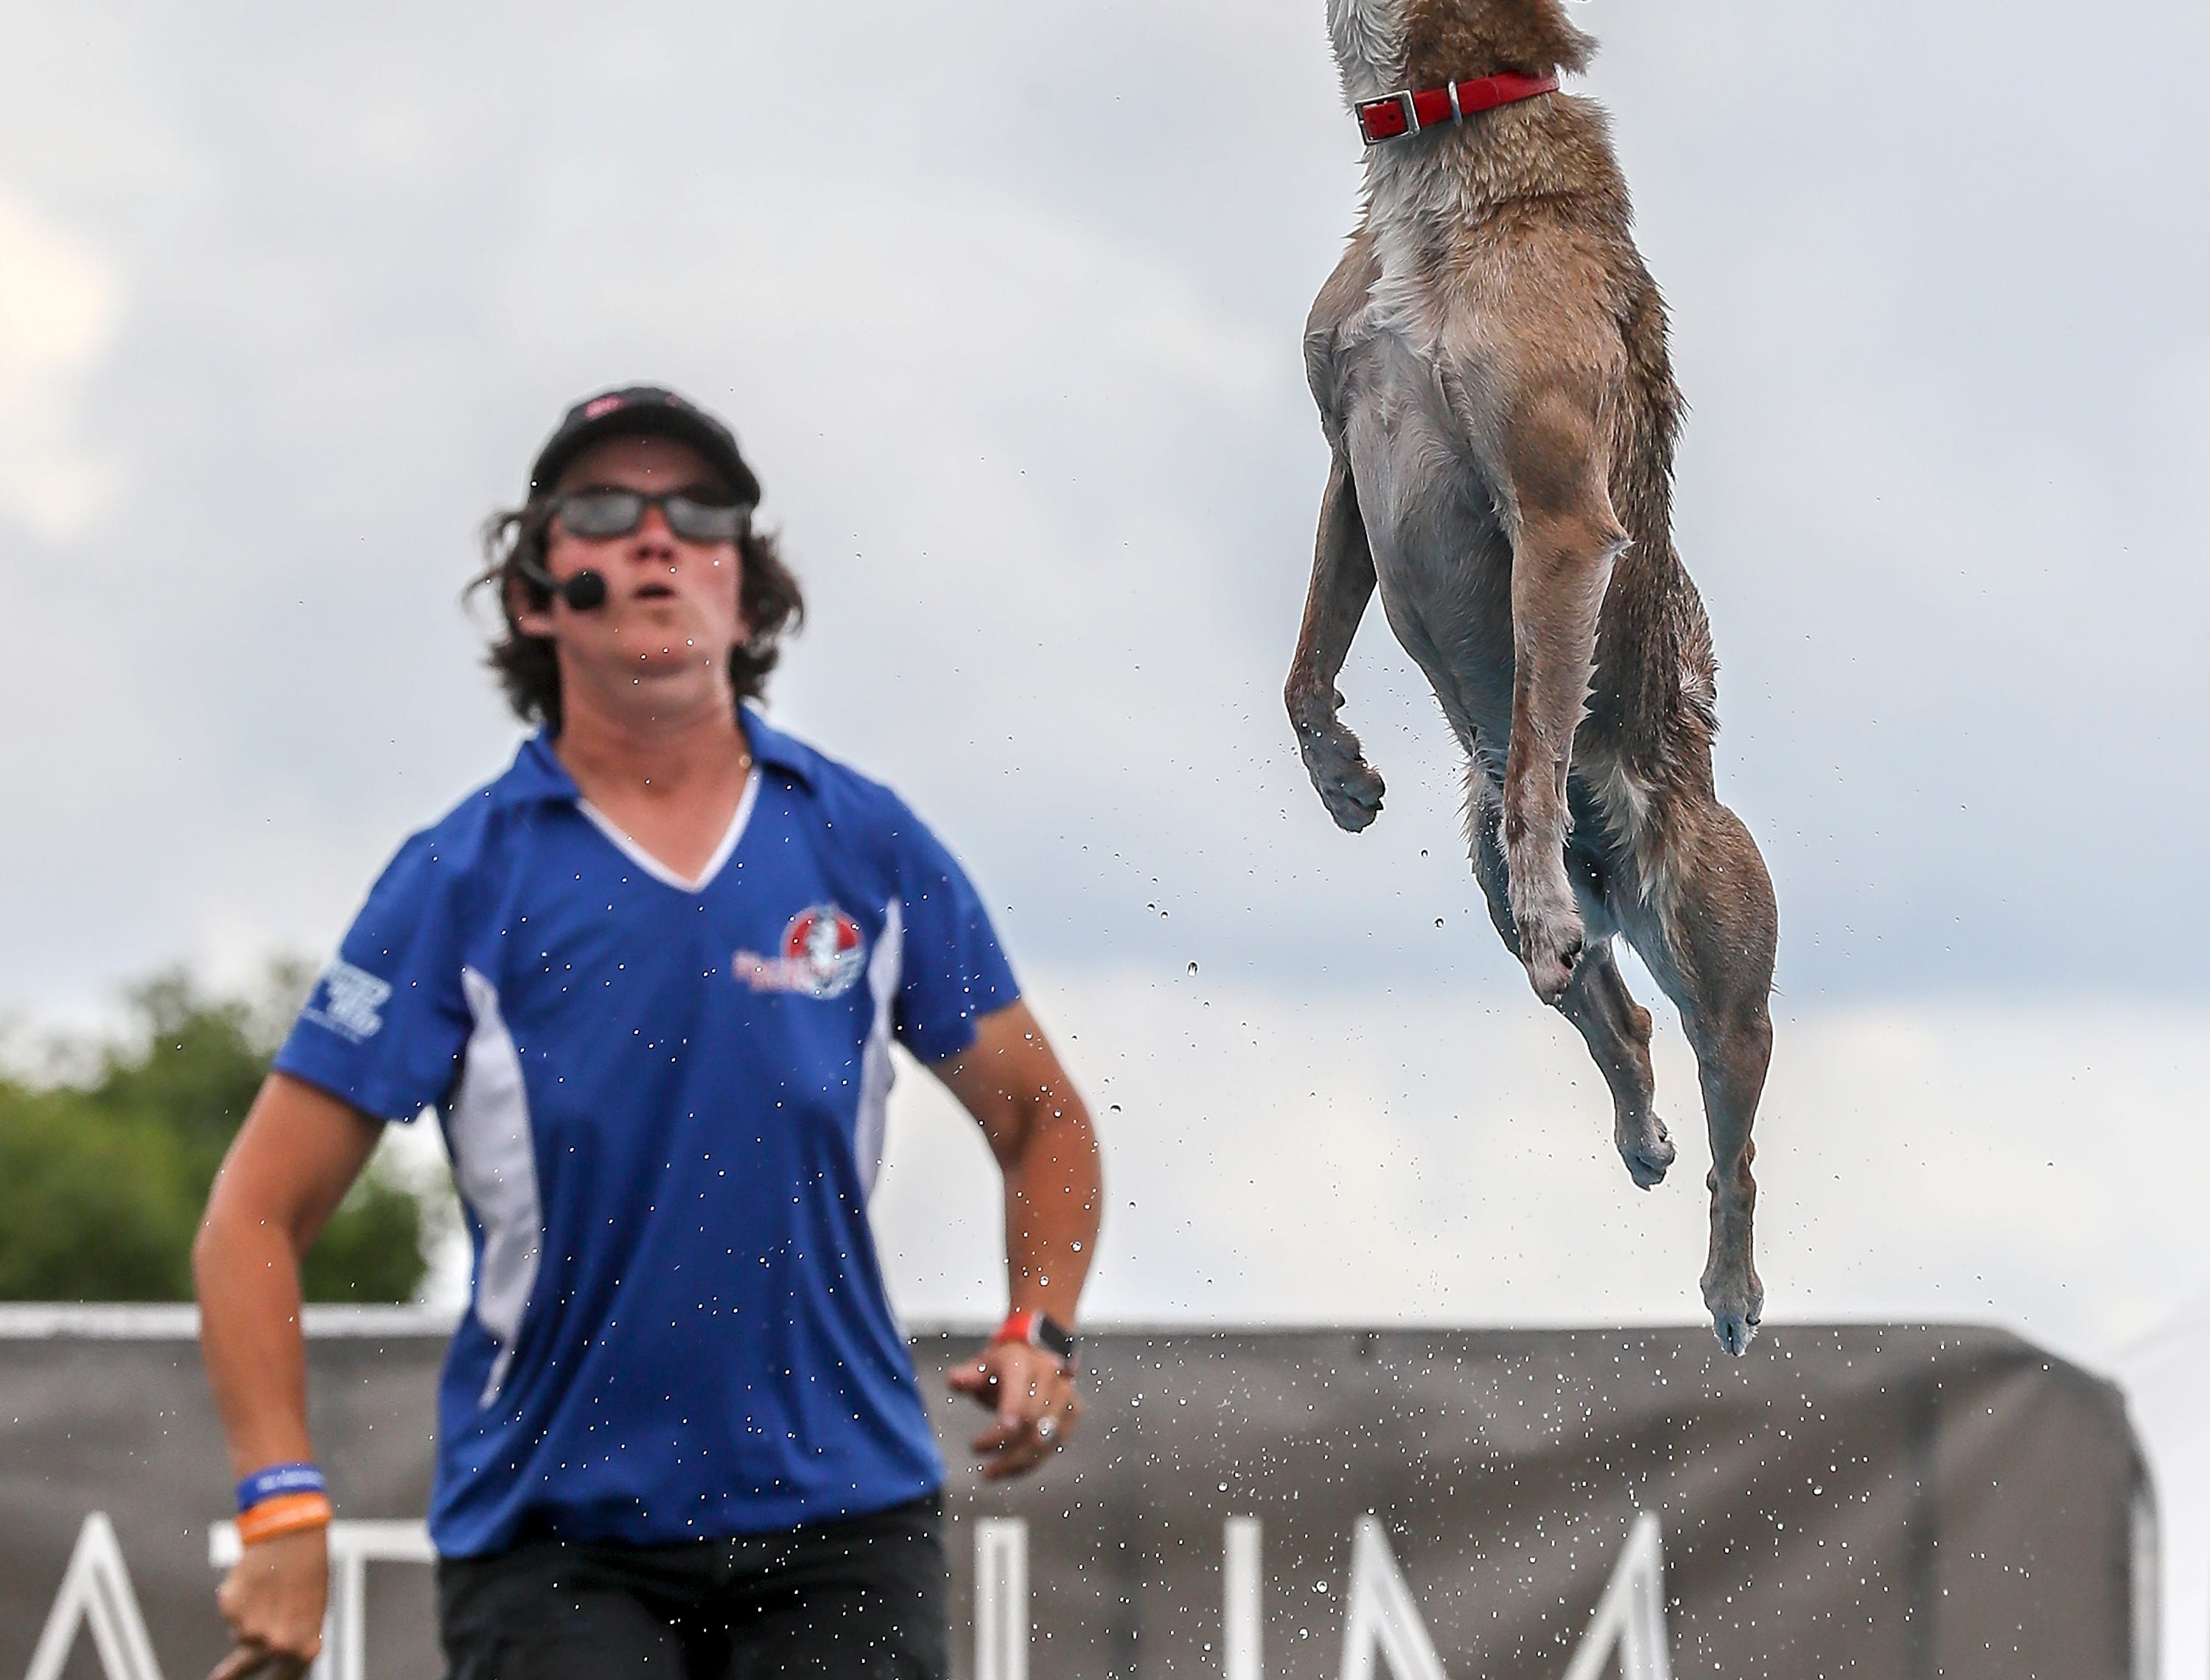 Nadja throws the ball to HiHo who made an attempt to catch it before hitting the water during the Marvelous Mutts show at the Kentucky State Fair.August 17, 2018